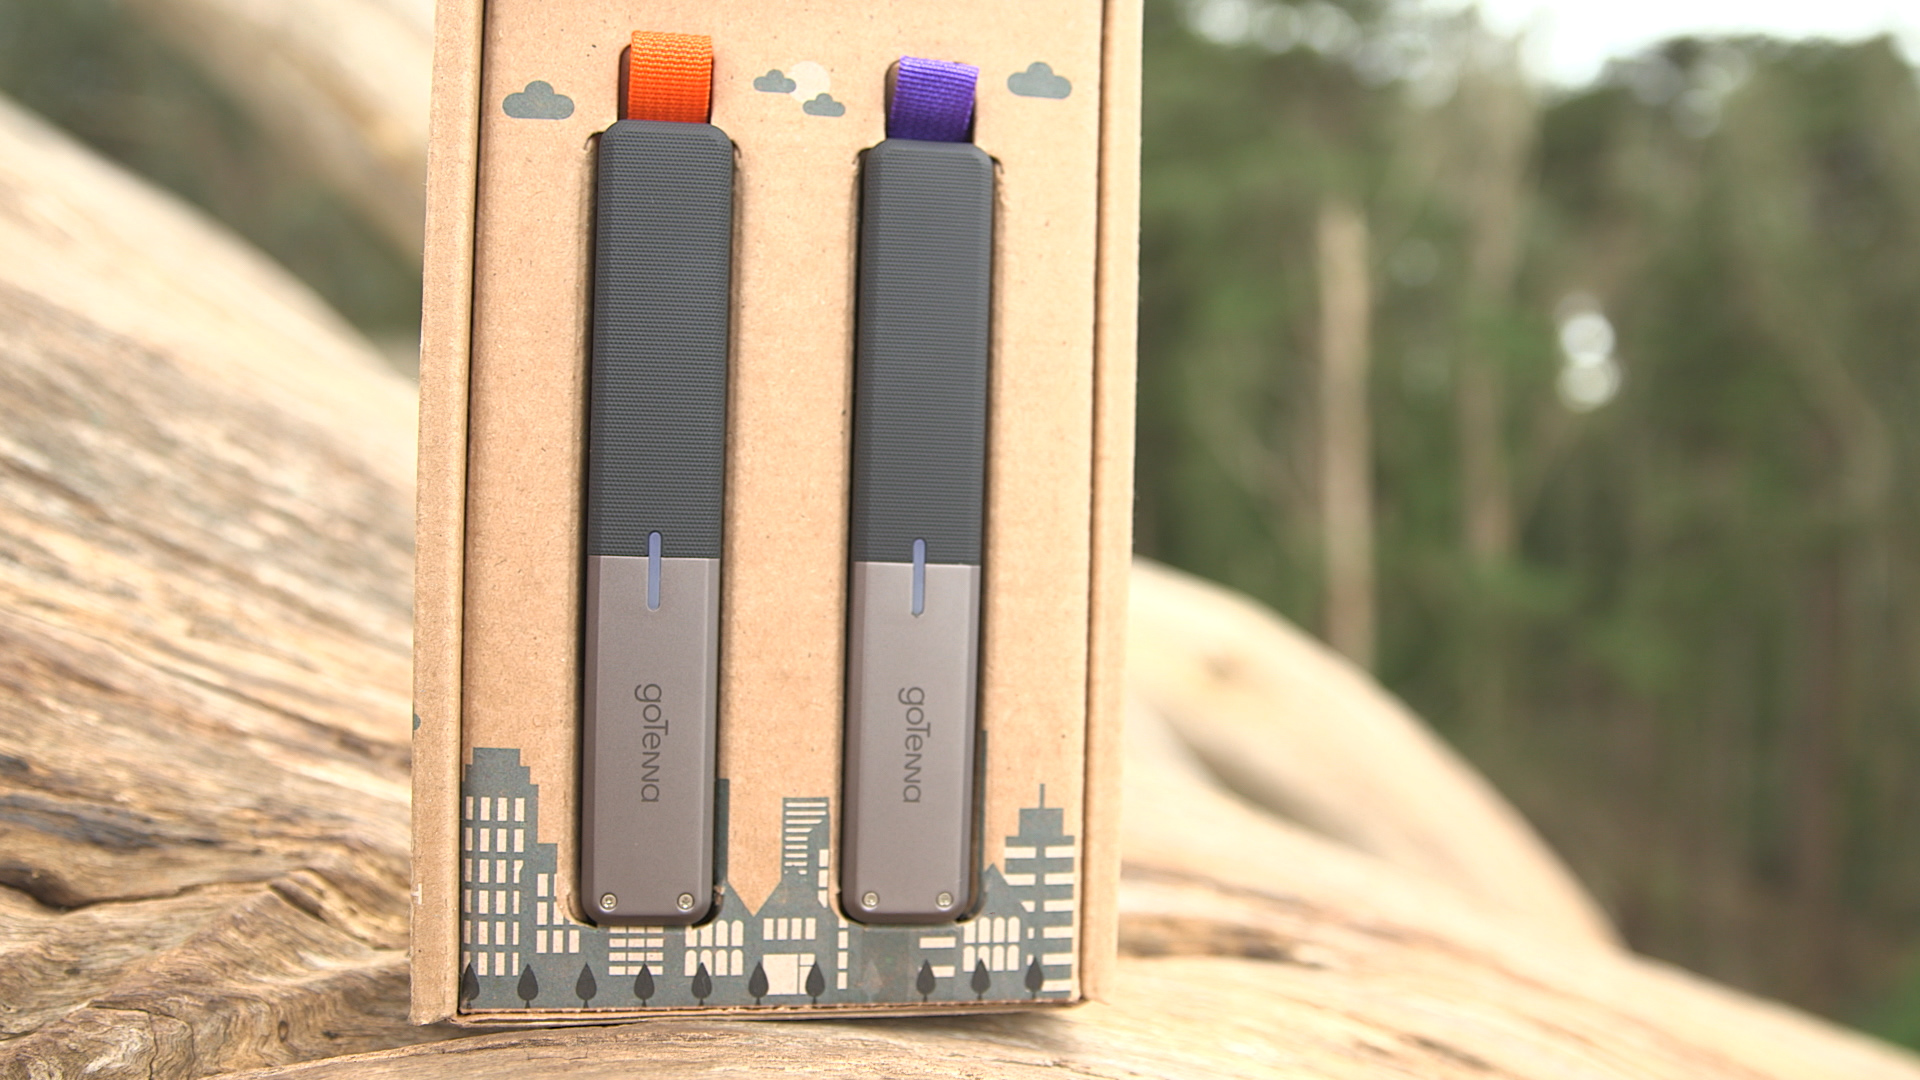 Video: GoTenna creates a wireless network when you're out of range